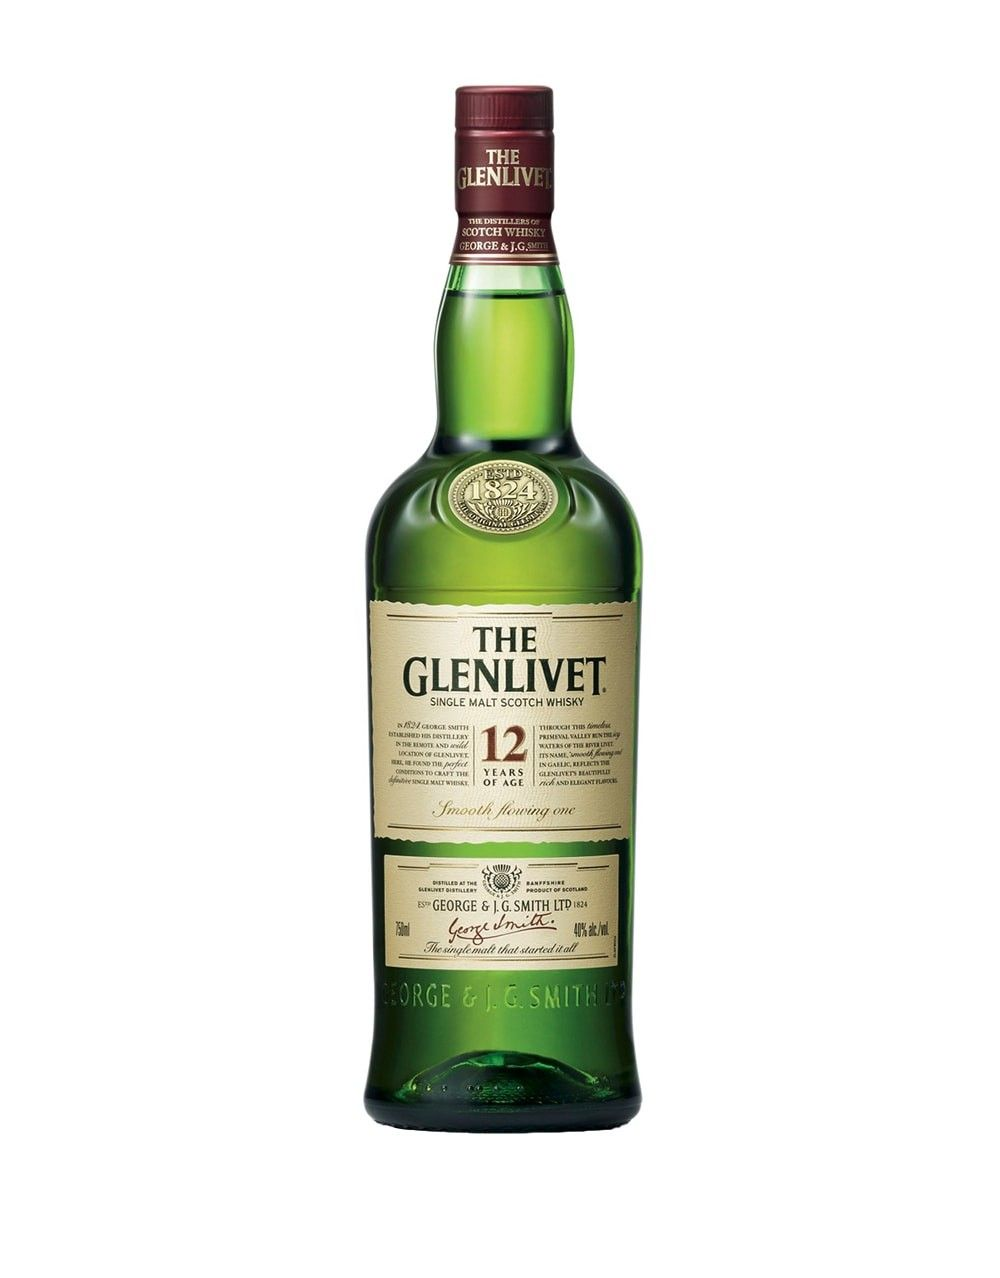 The Glenlivet 12 Year Old Scotch Whisky Buy Online Or